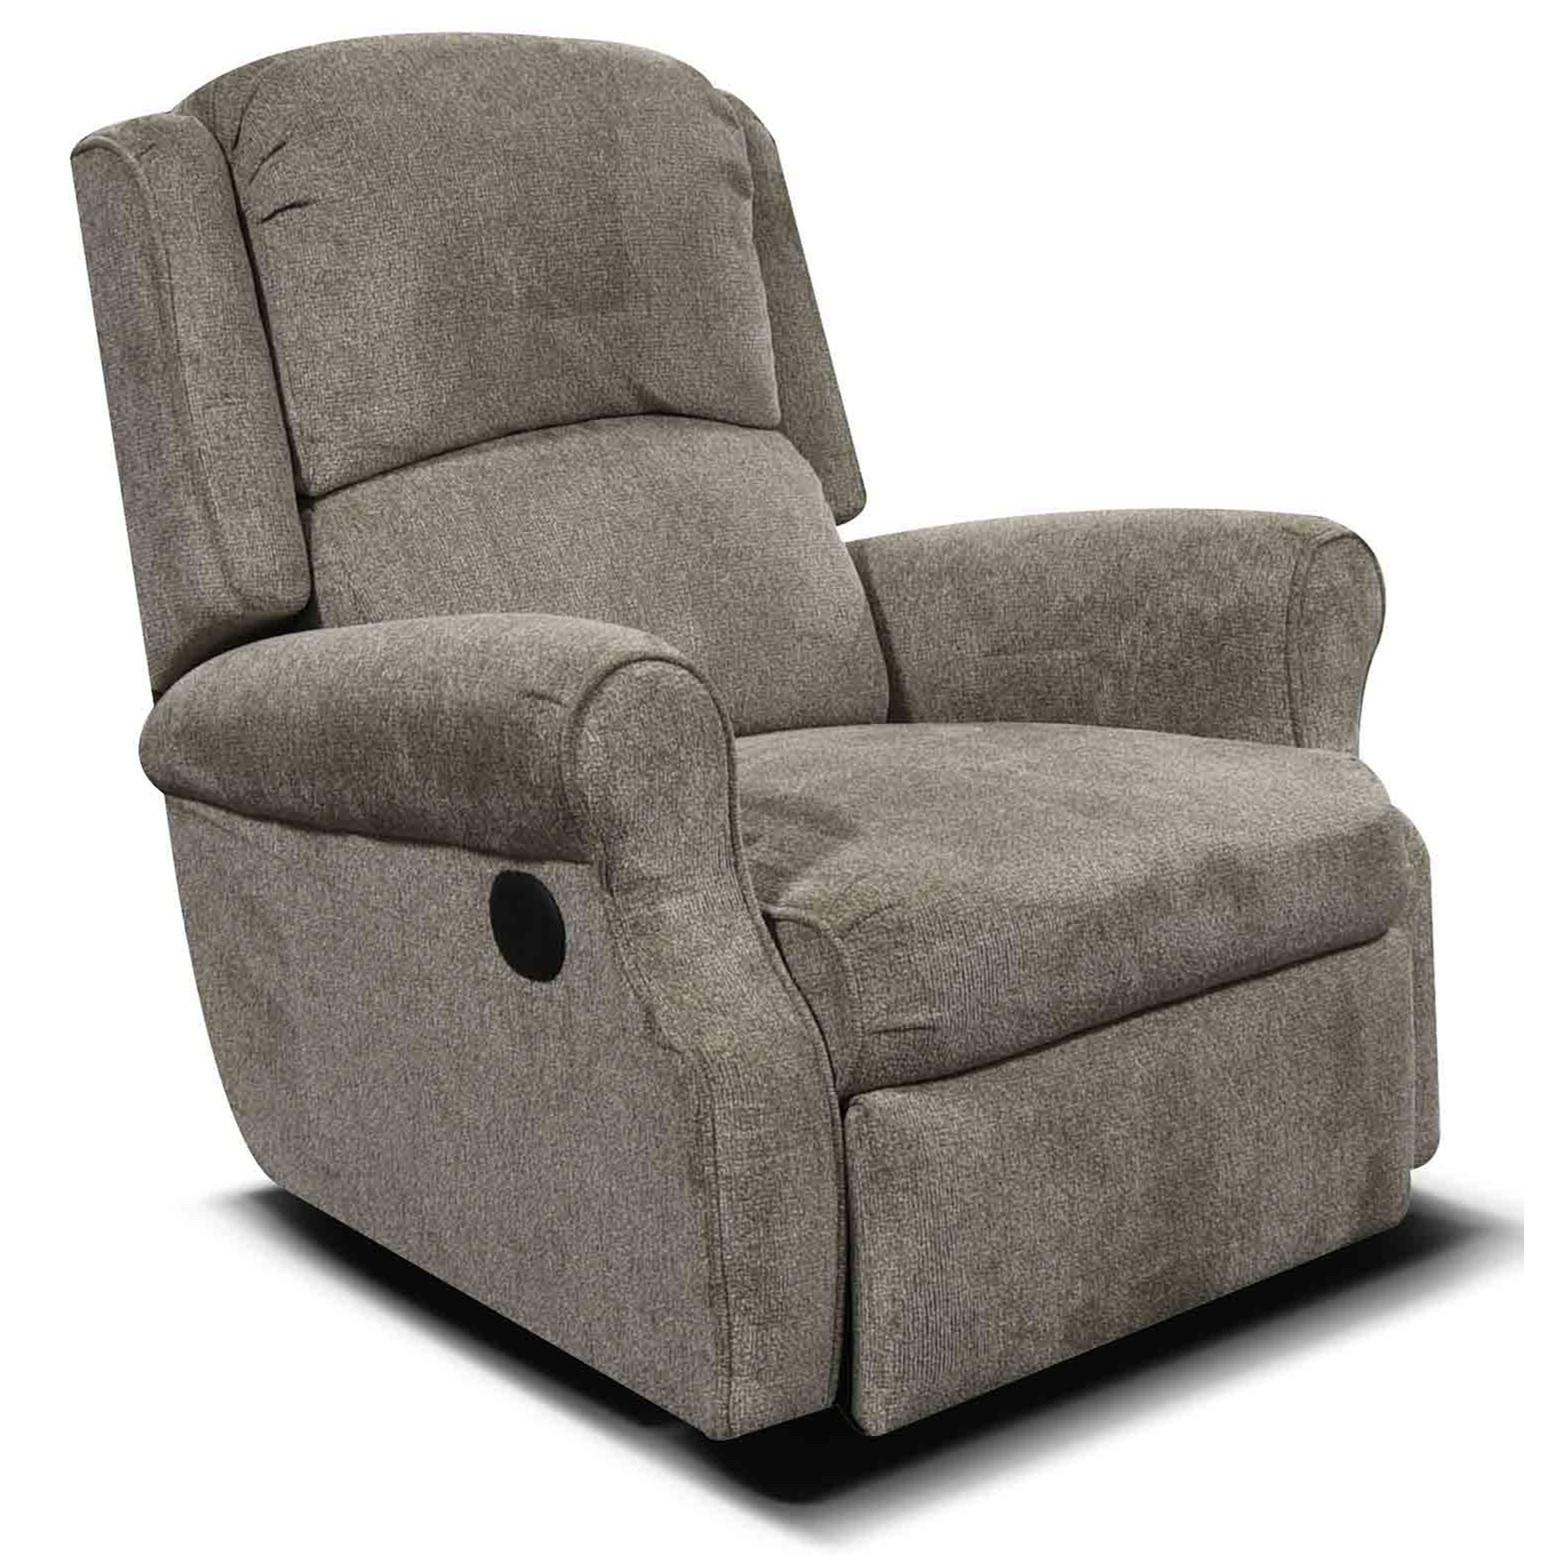 Marybeth Rocker Recliner by England at Lindy's Furniture Company